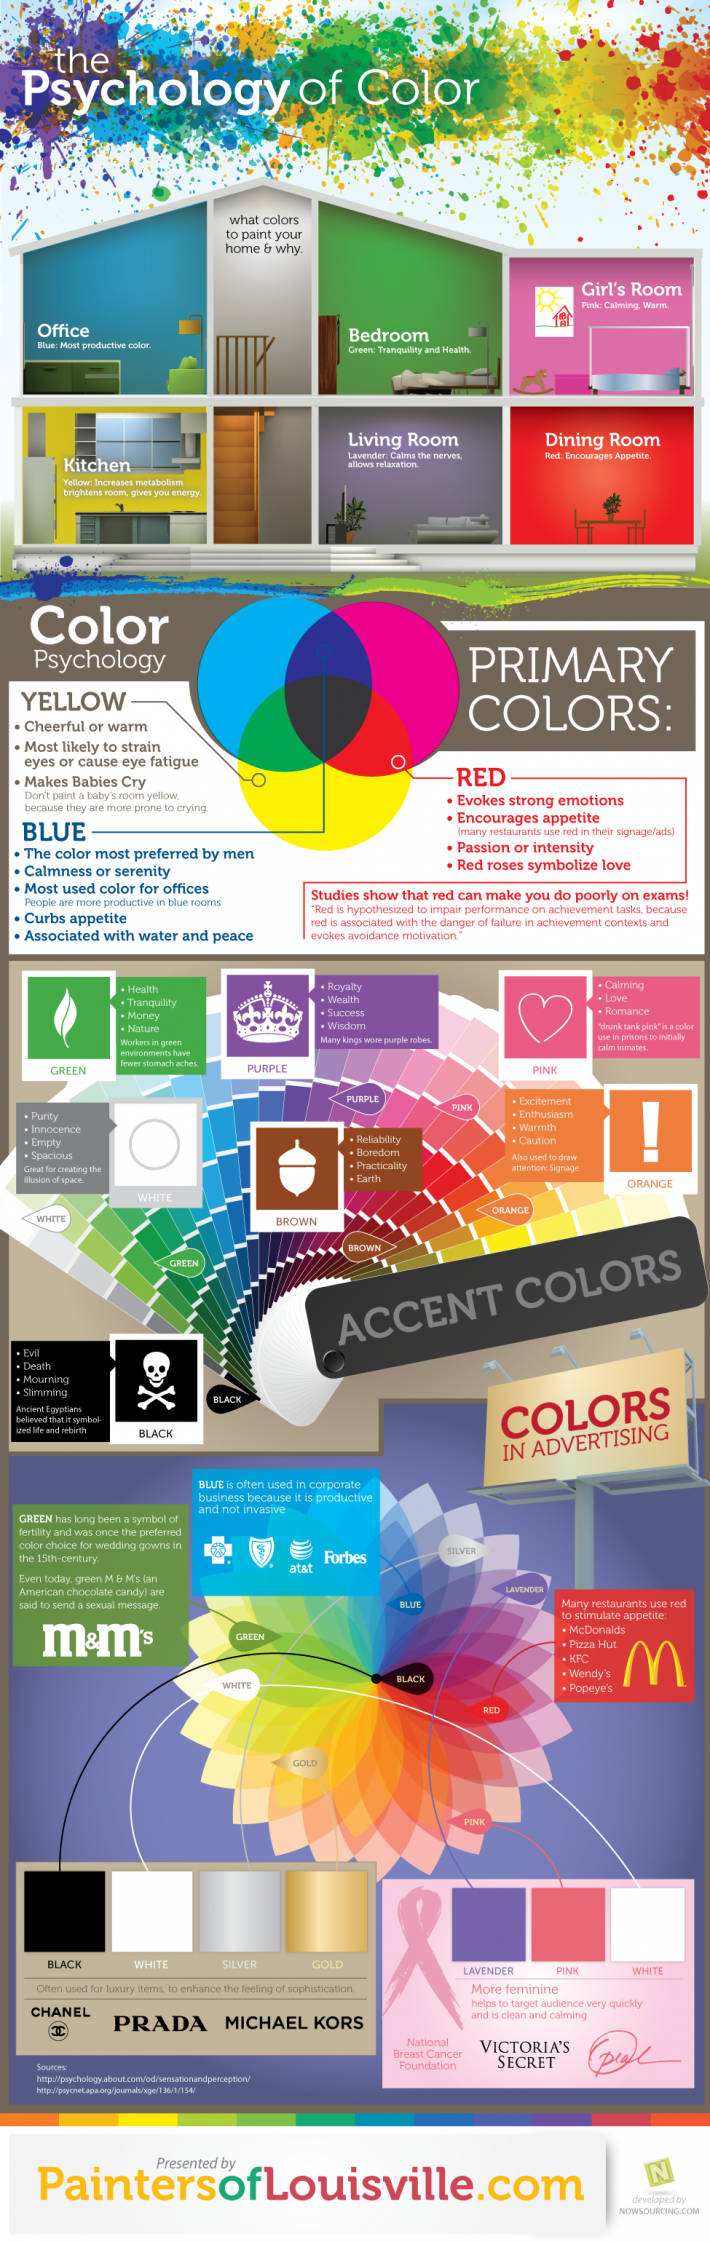 Psychology of Color  Makes sense, and a perfect excuse to paint our next living room purple yep yep yep!